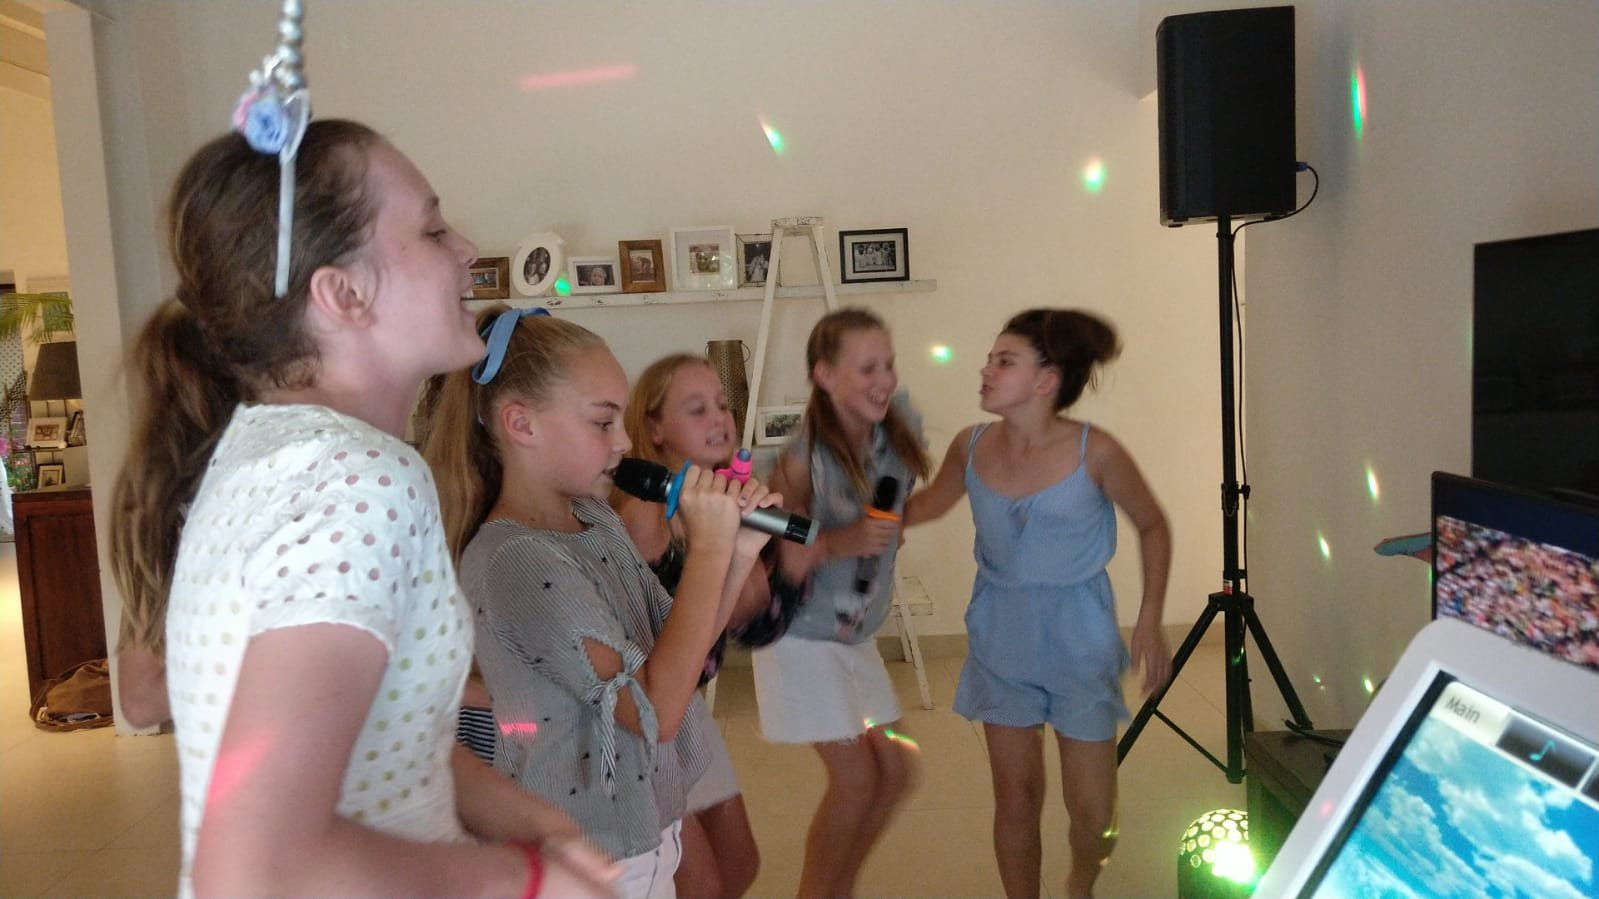 Mobile Karaoke enhances the fun at home parties regardless of age